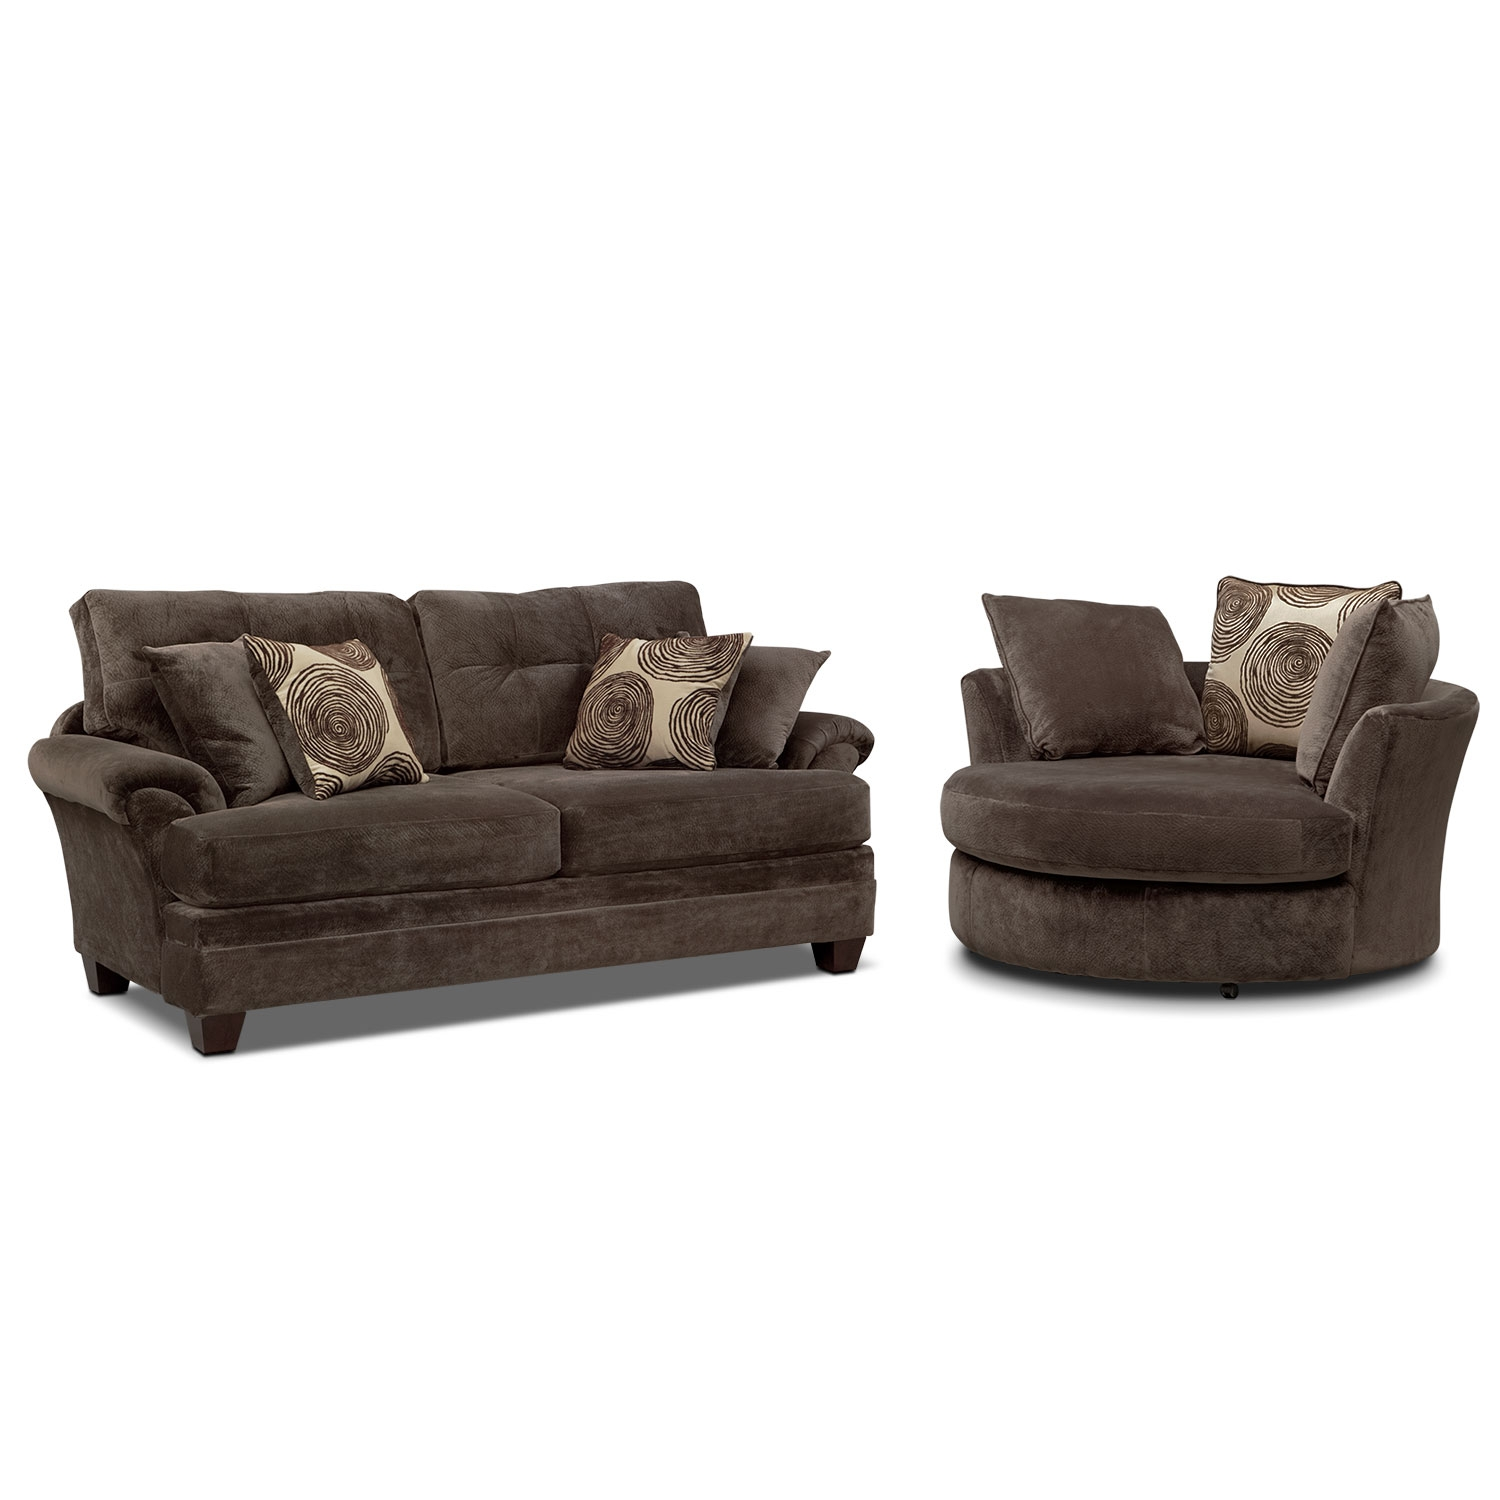 Cordelle Sofa And Swivel Chair Set Chocolate Value City Furniture Inside Sofa With Swivel Chair (View 10 of 15)